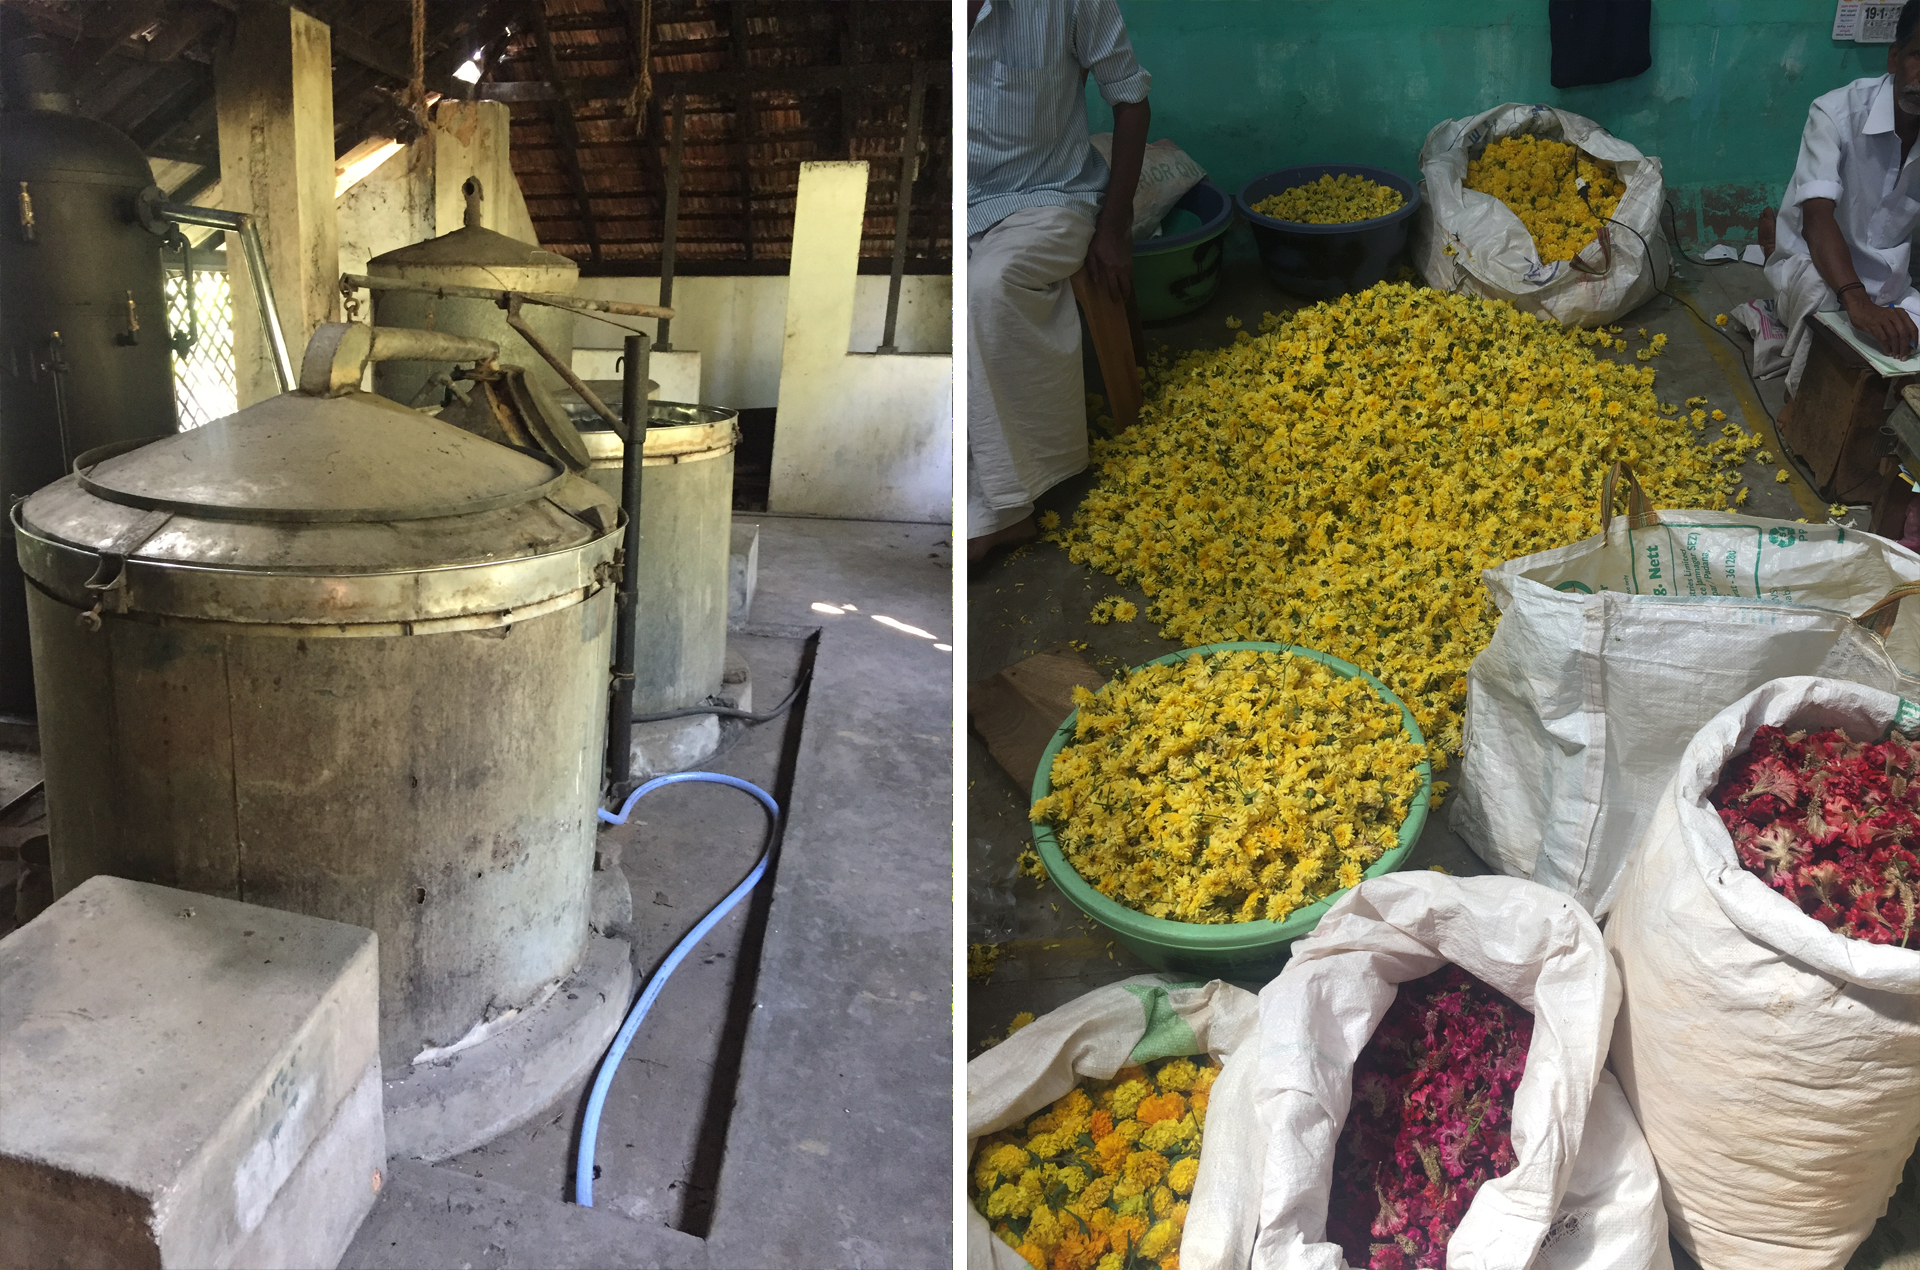 Natural Body Products | Distillation Units at Essential Oil Research Centre & Flower Market | Natural Bodycare Products